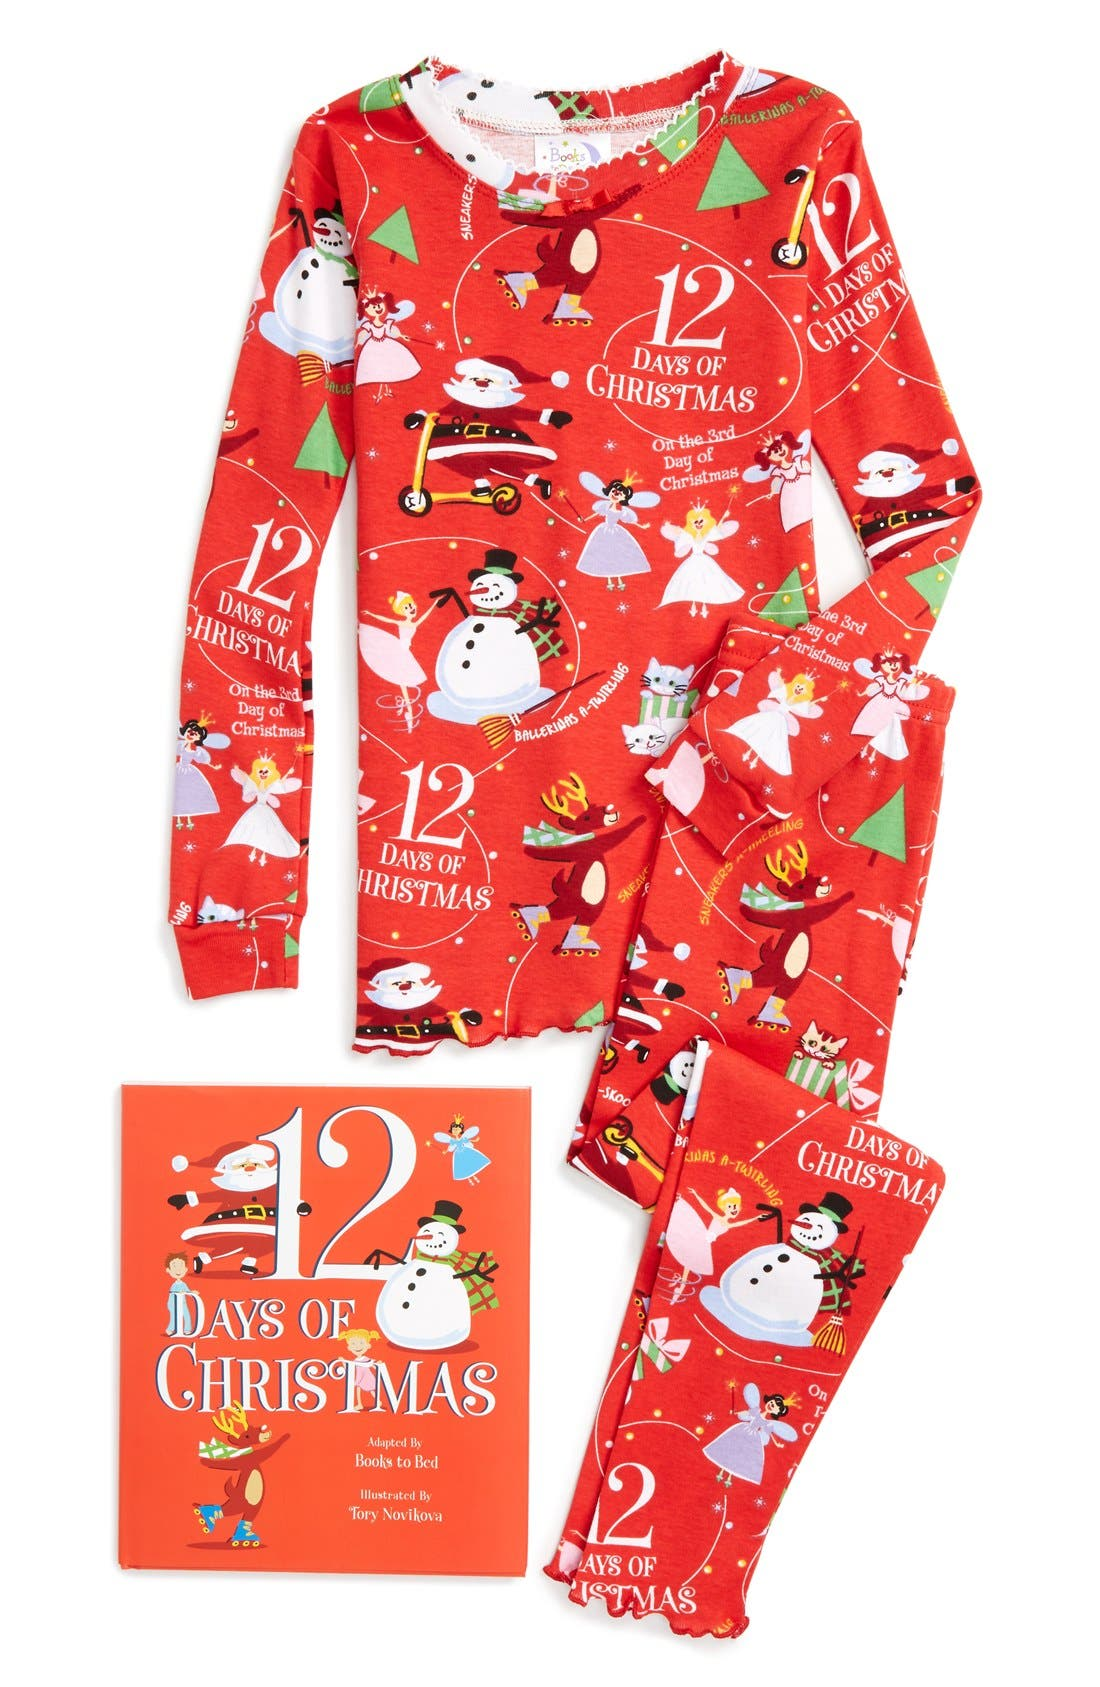 Alternate Image 1 Selected - Books to Bed 12 Days of Christmas Fitted Two-Piece Pajamas & Book Set (Toddler Girls, Little Girls & Big Girls)